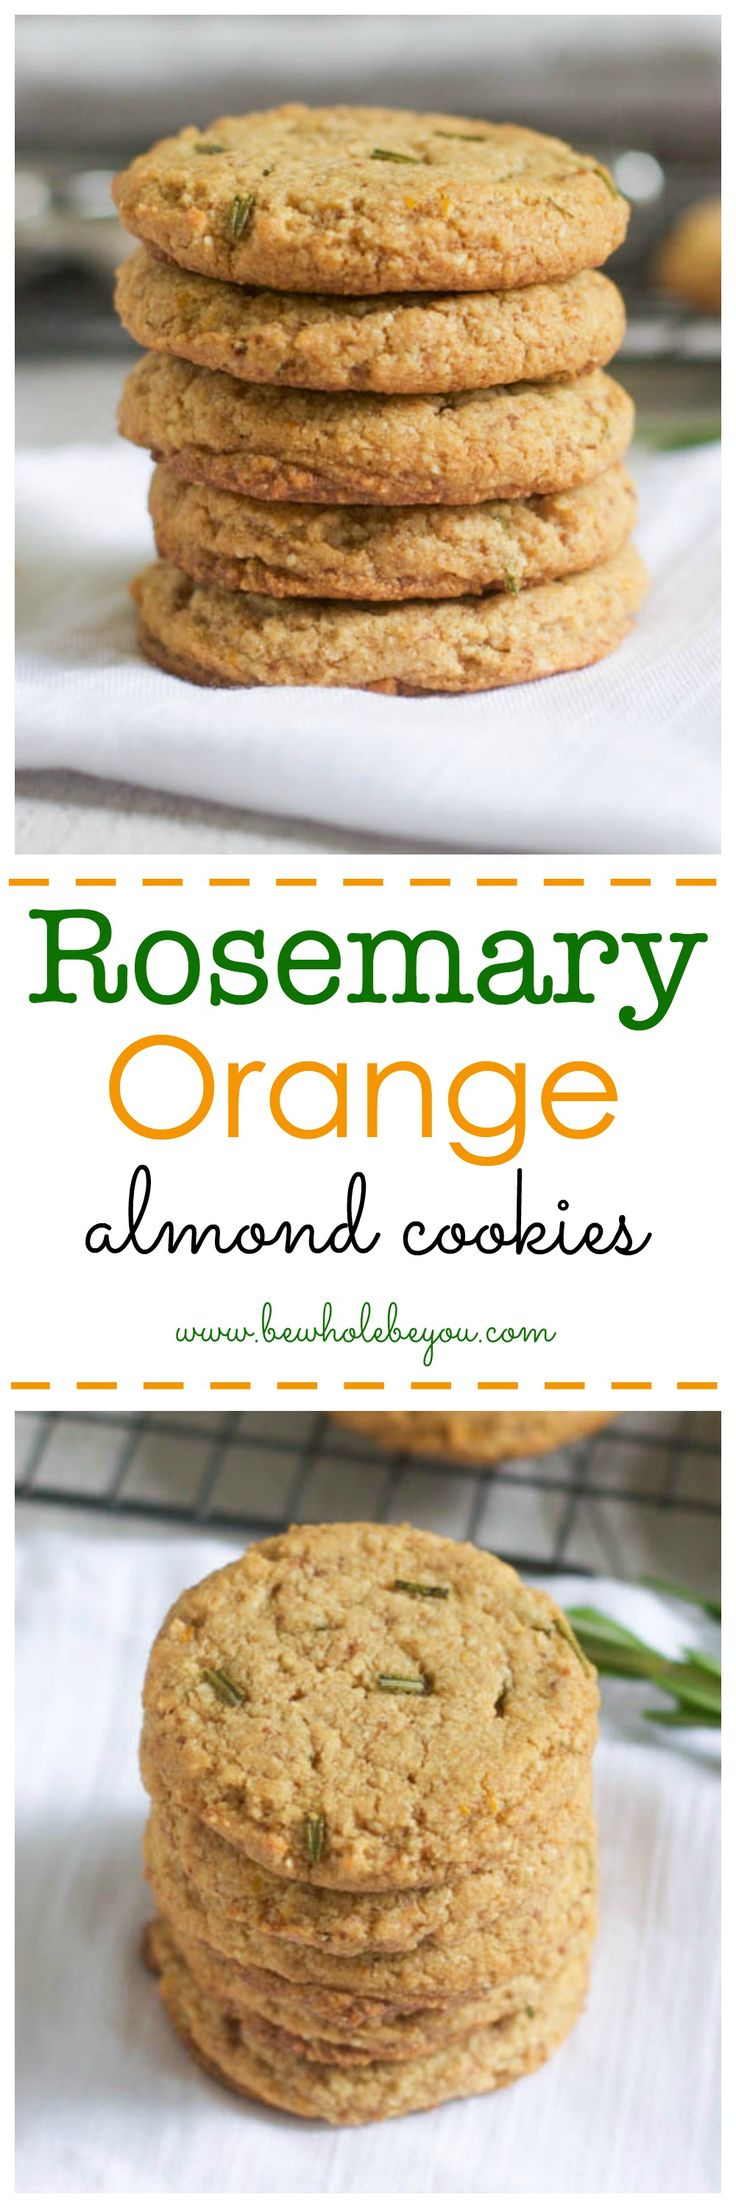 Rosemary Orange Almond Cookies. Be Whole. Be You.